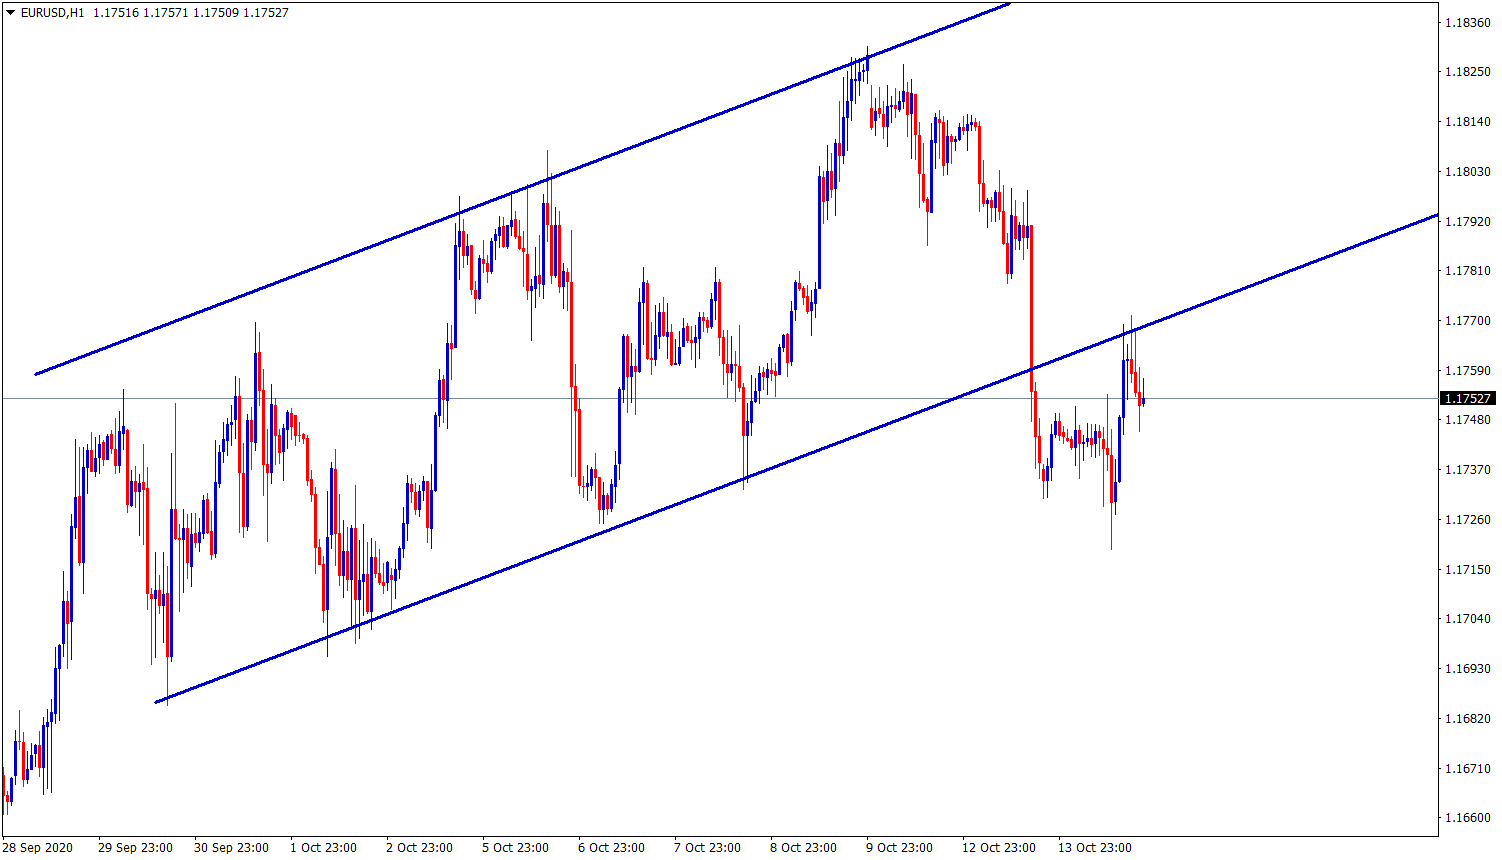 eurusd struggling to move up or down